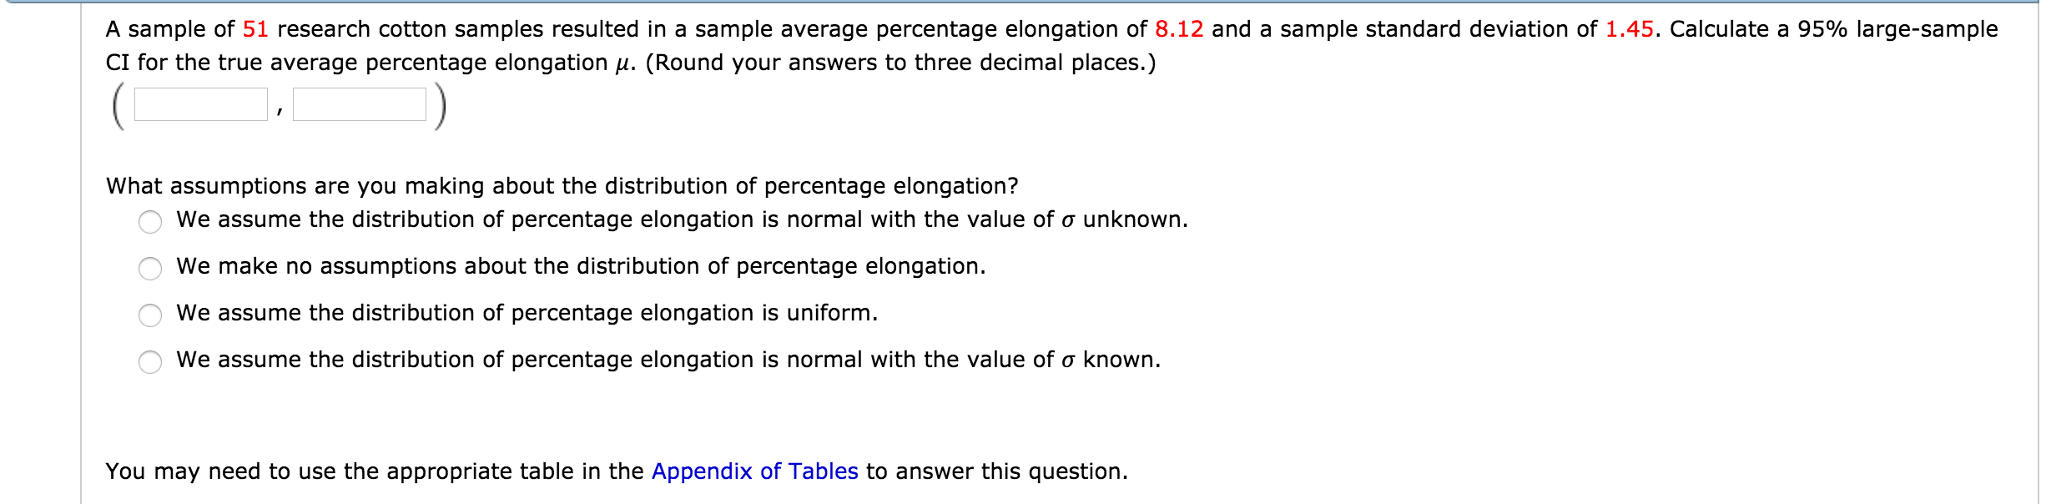 A Sample Of 51 Research Cotton Samples Resulted In Powershell: Calculating  Standard Deviation Powershell: